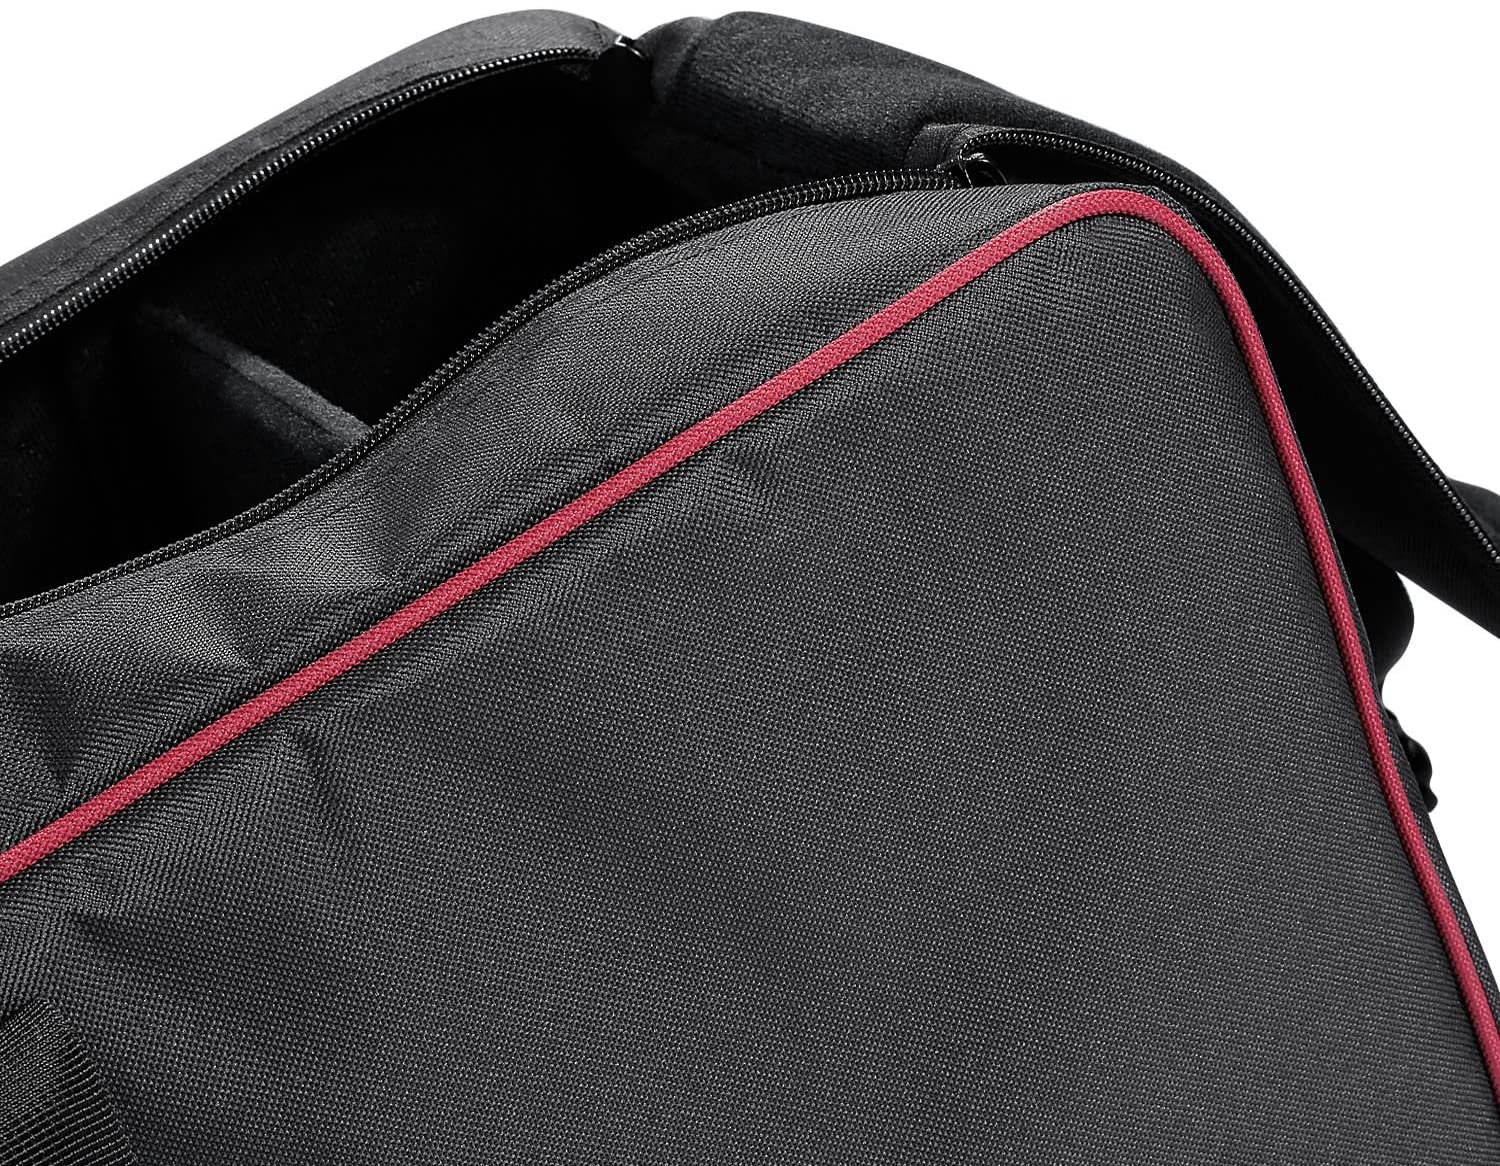 Neewer 39x10x10//100x25x25cm Photo Video Studio Kit Carrying Bag with Extra Side Pocket for Light Stands Boom Stands Umbrellas